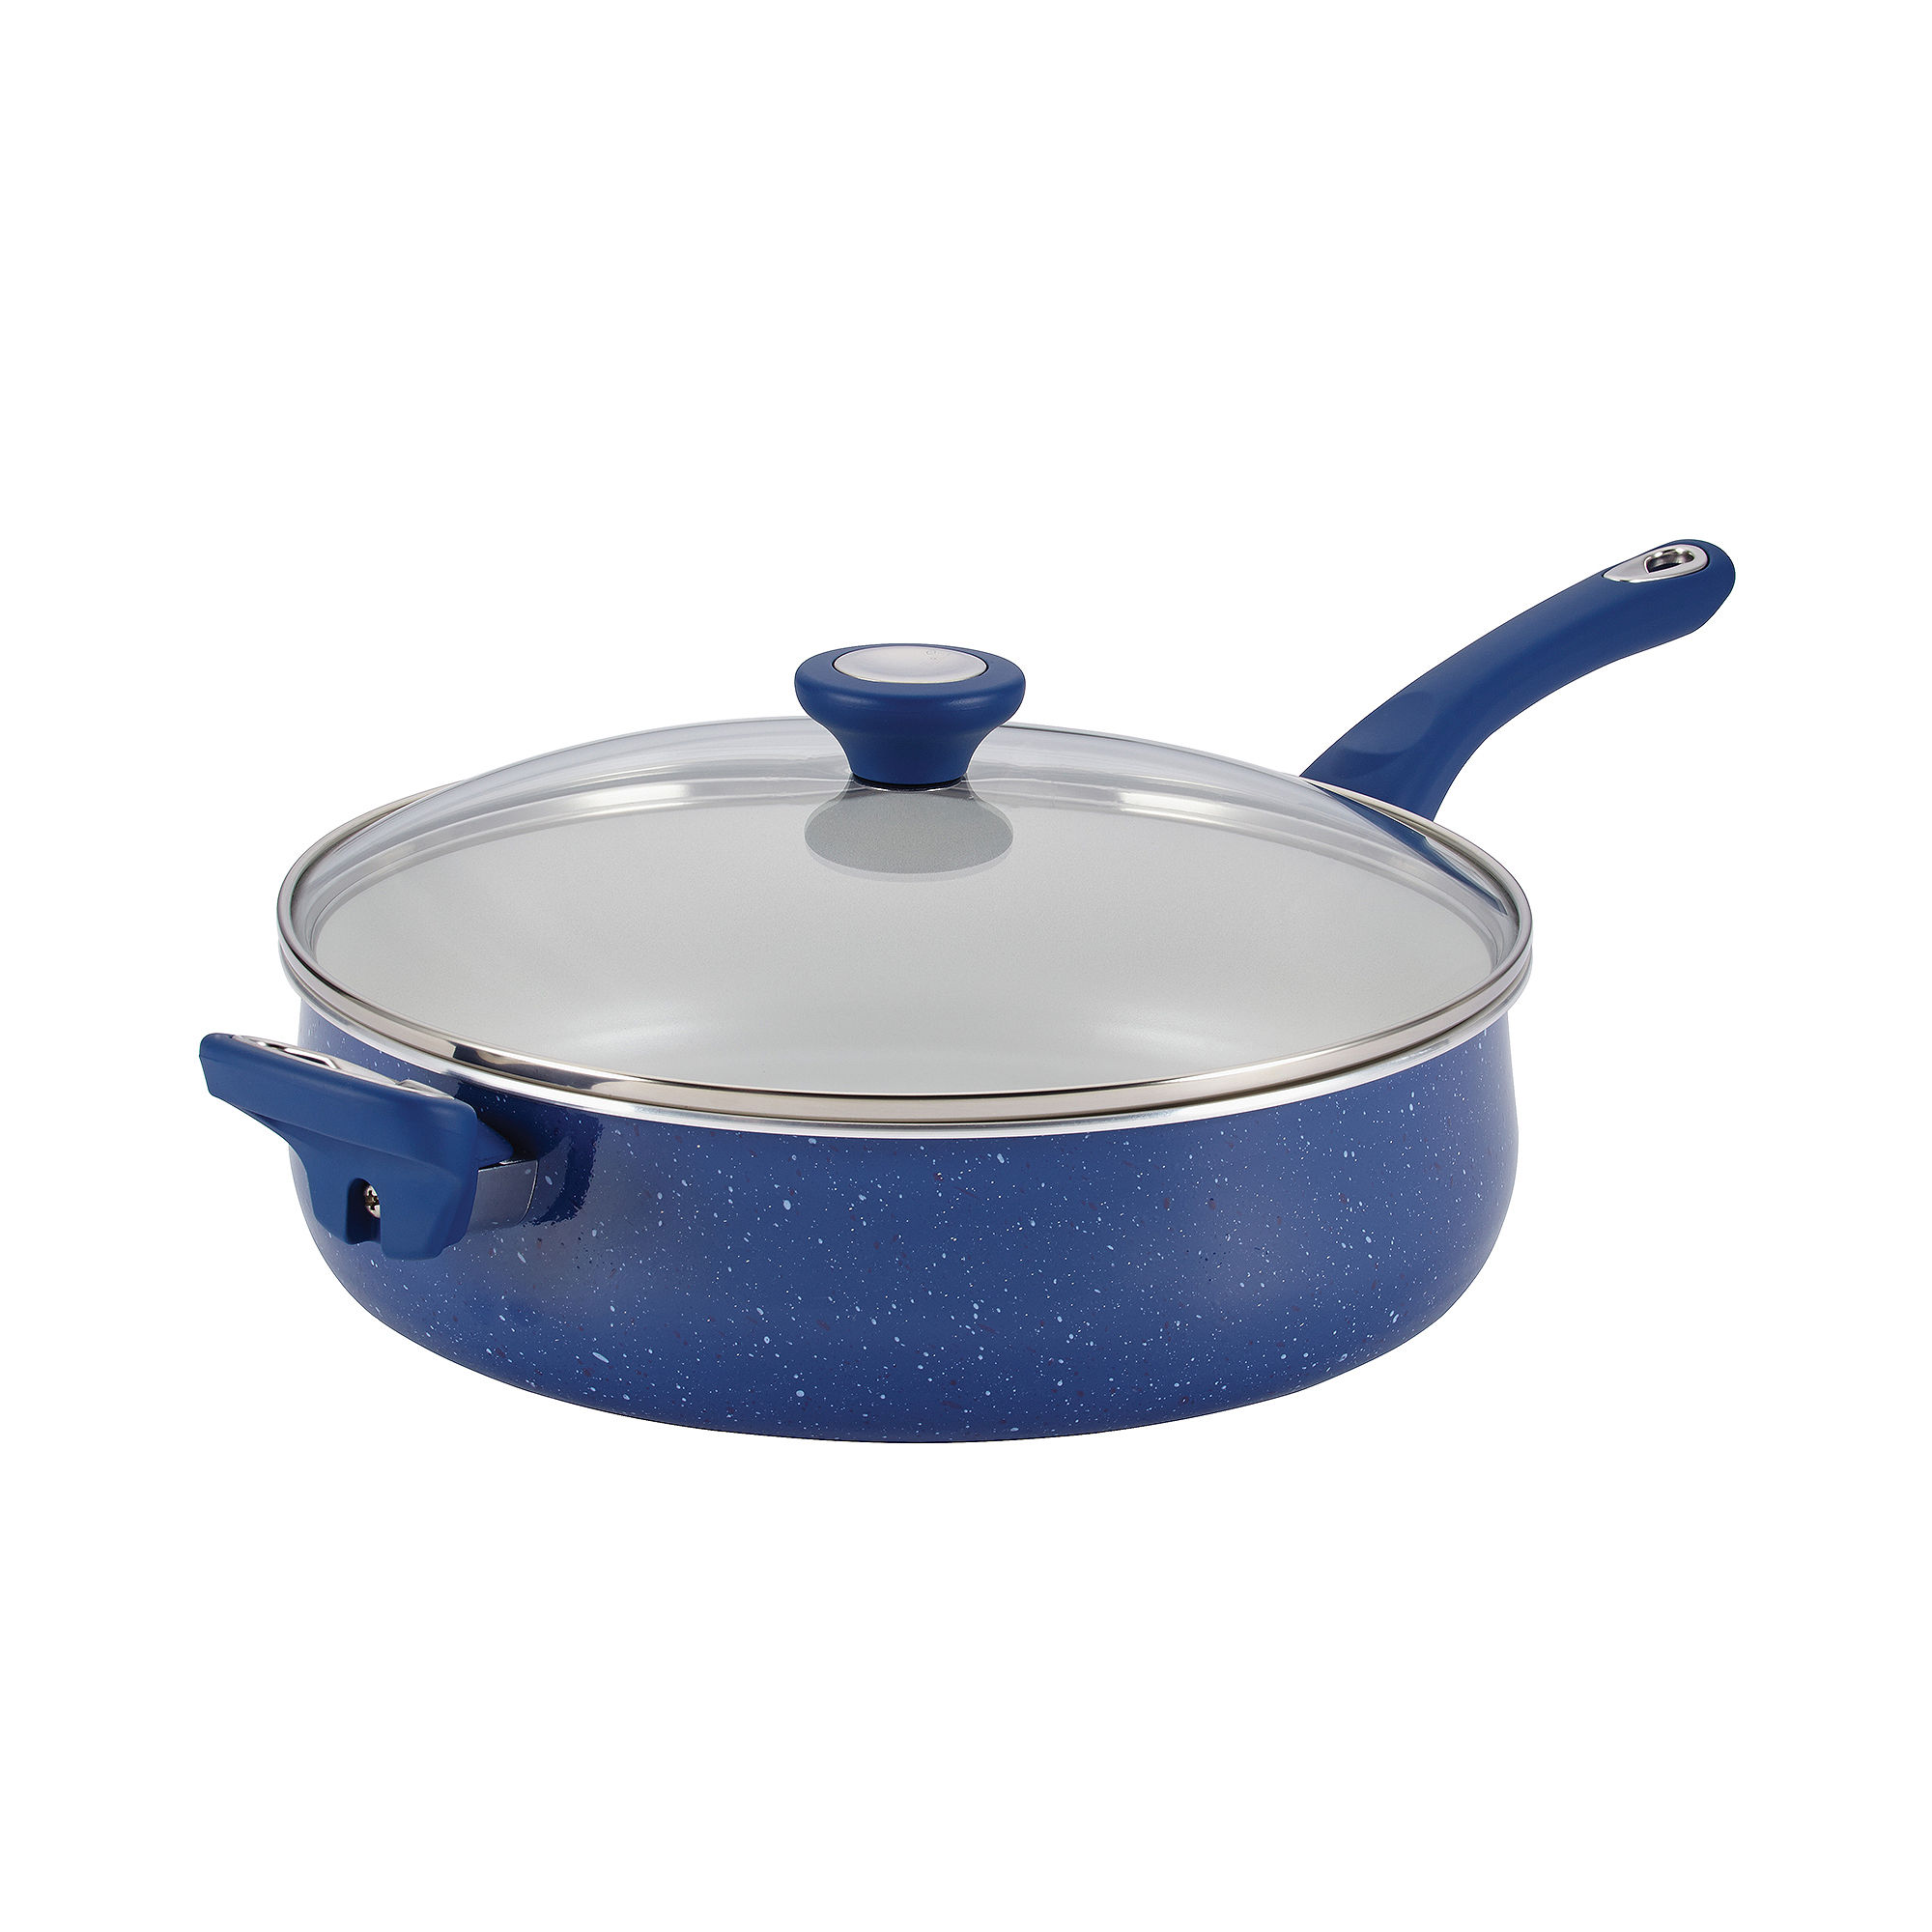 Farberware New Traditions 5-qt. Speckled Nonstick Jumbo Cooker